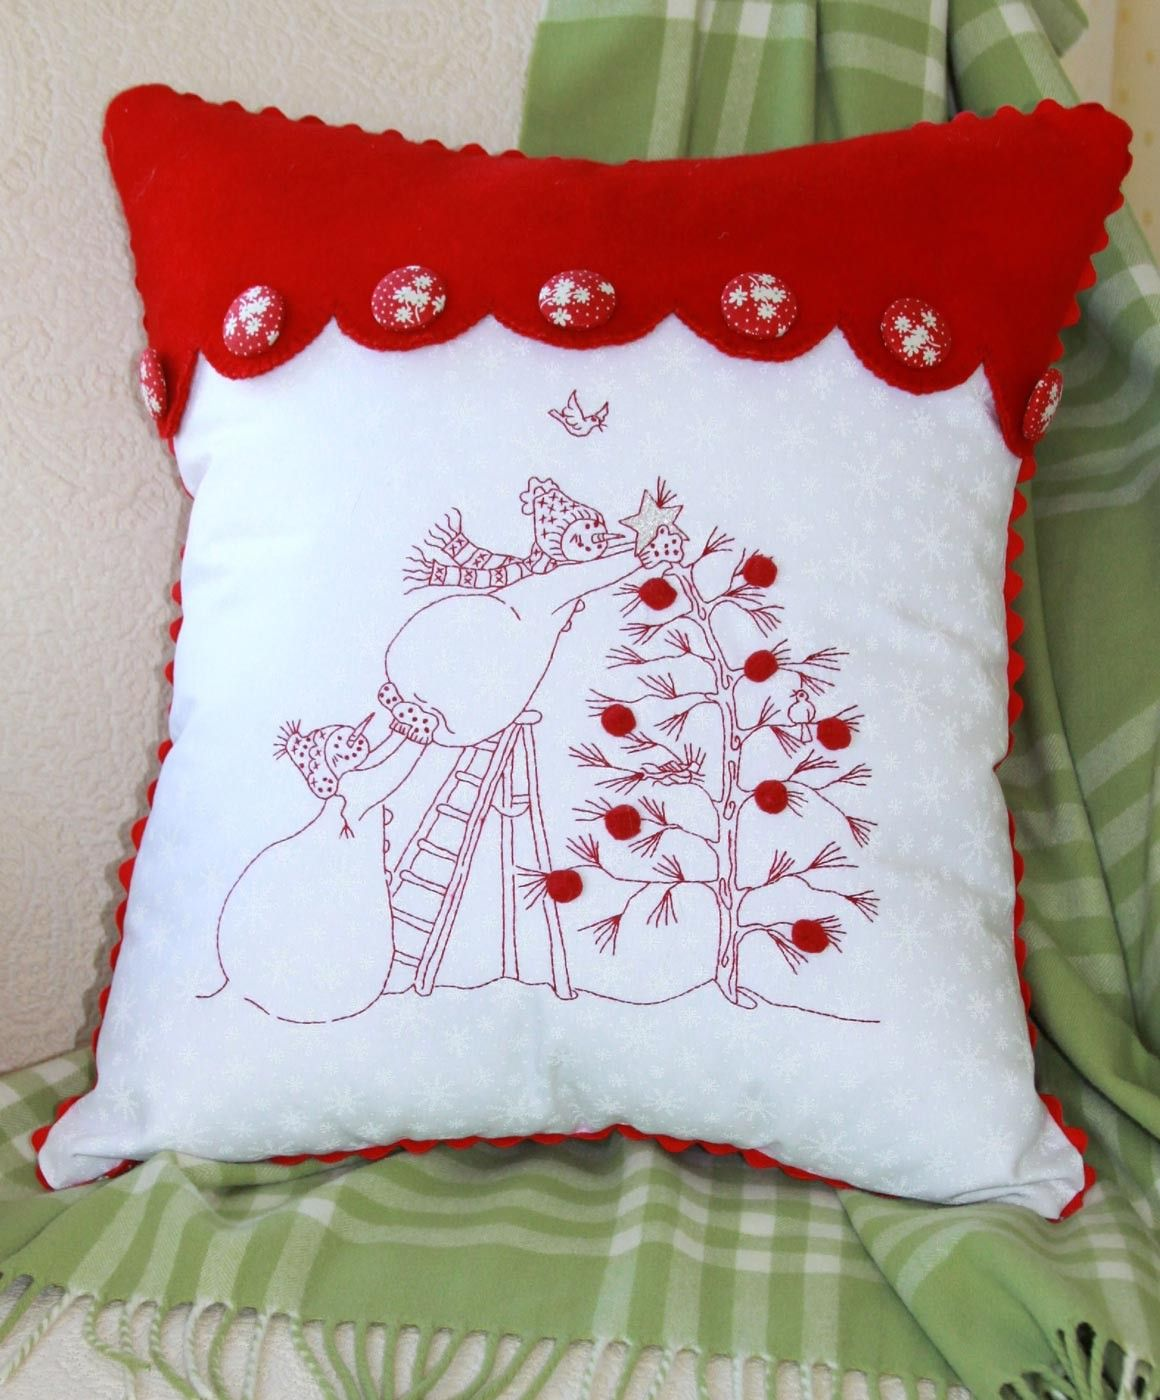 Hand embroidery pattern trim the tree crabapple hill studio